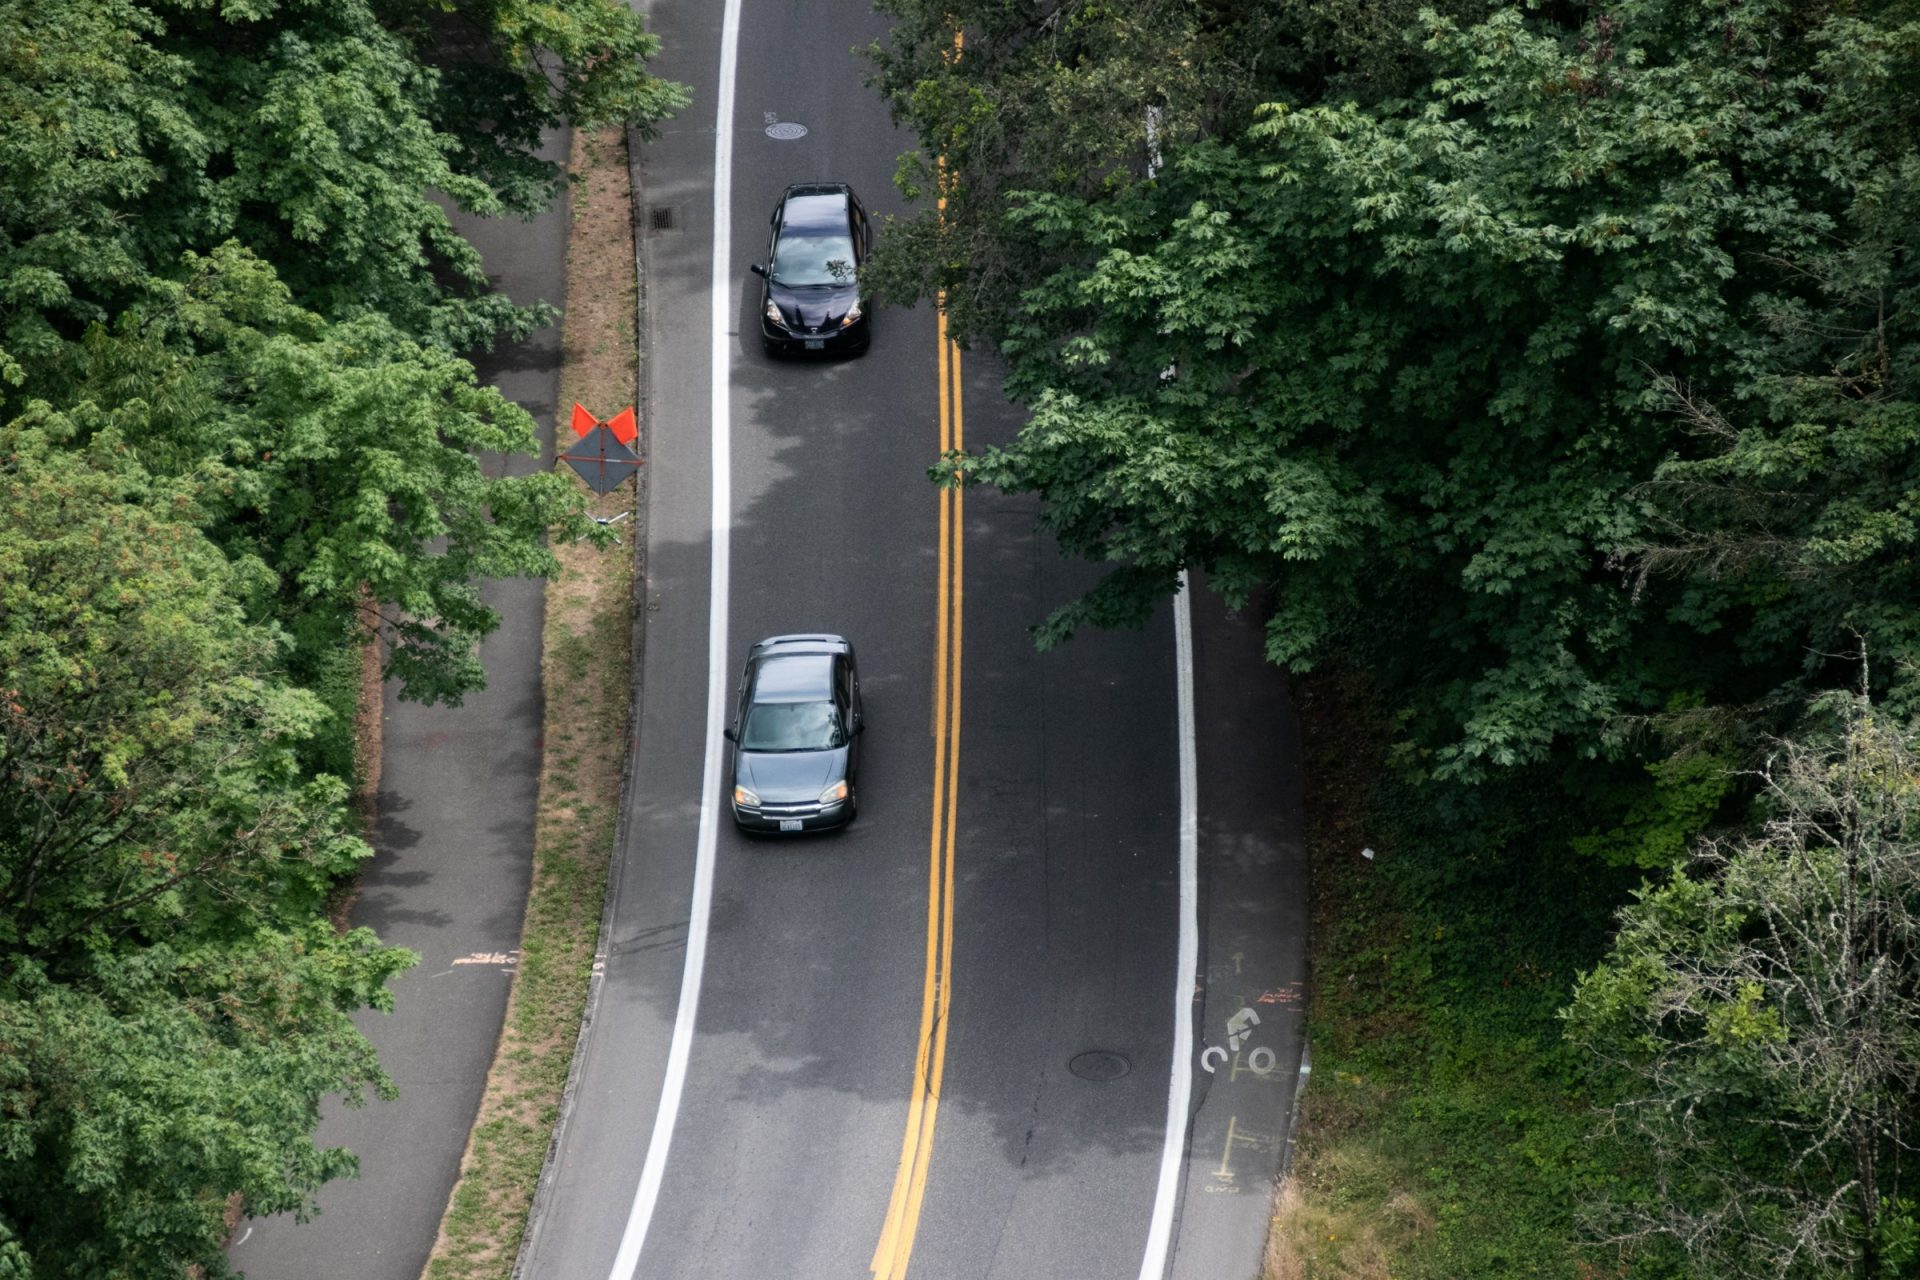 Two Cars In Road Between Trees